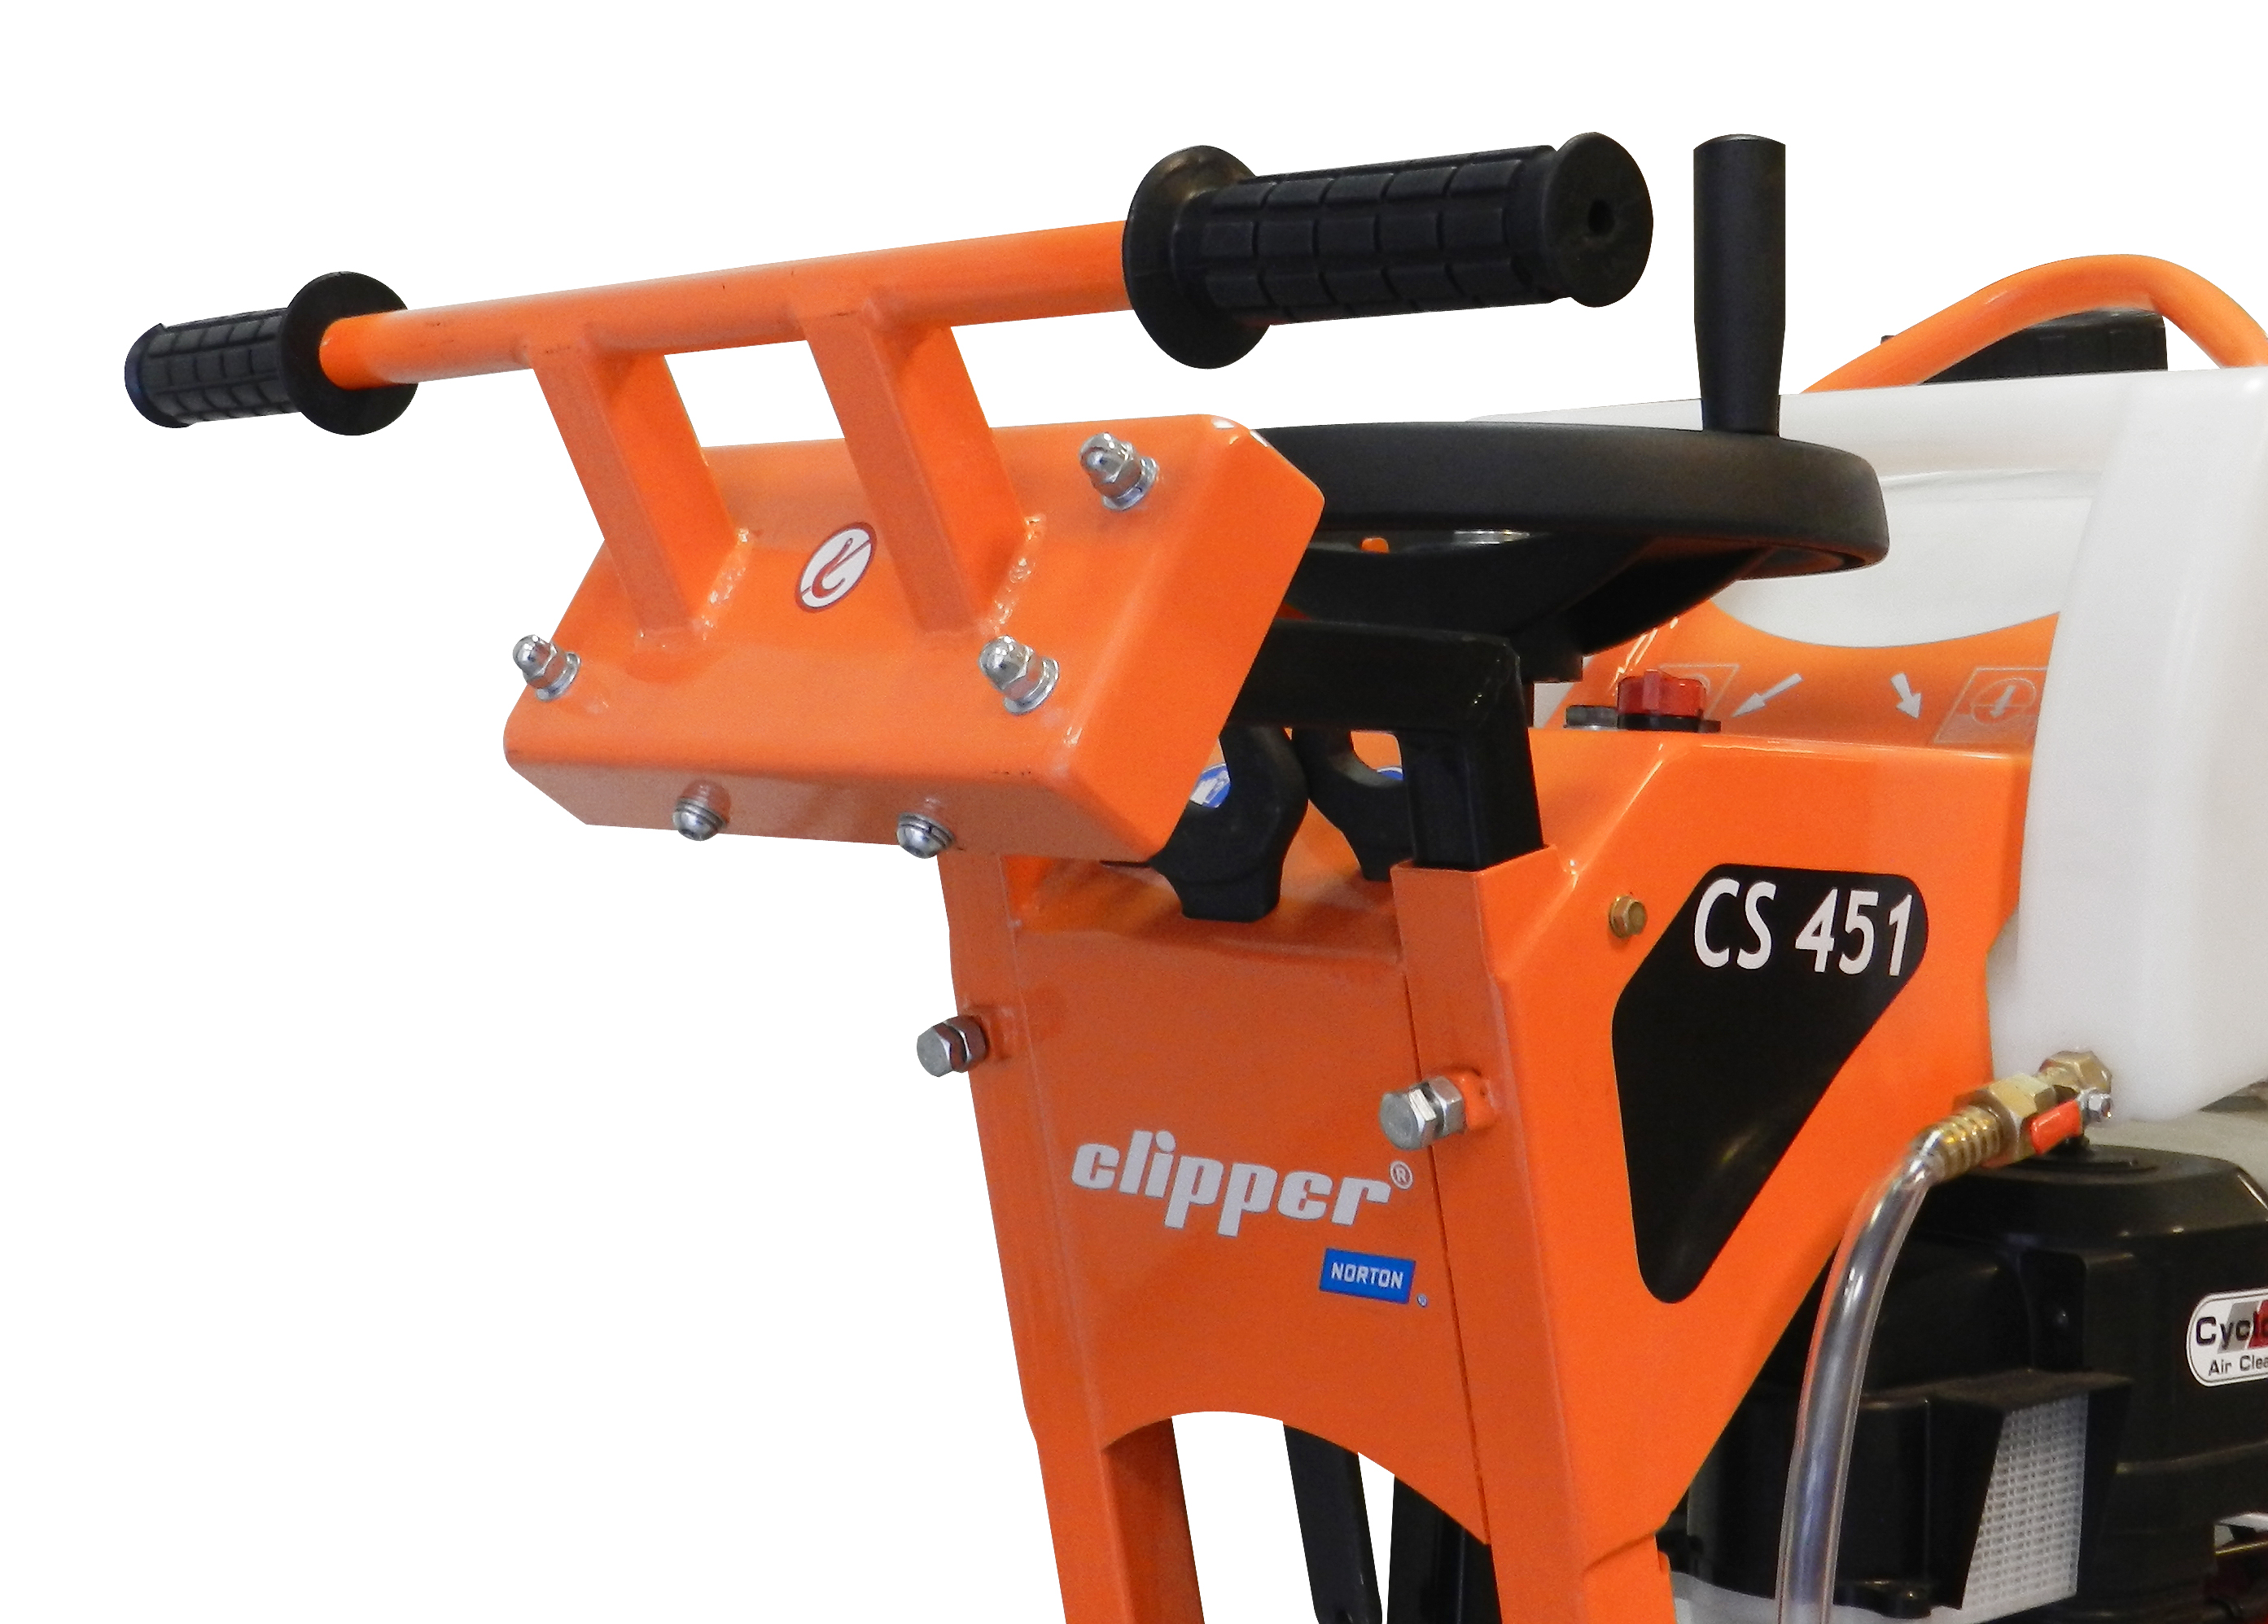 CS451 Floor saw vibration dampening technology